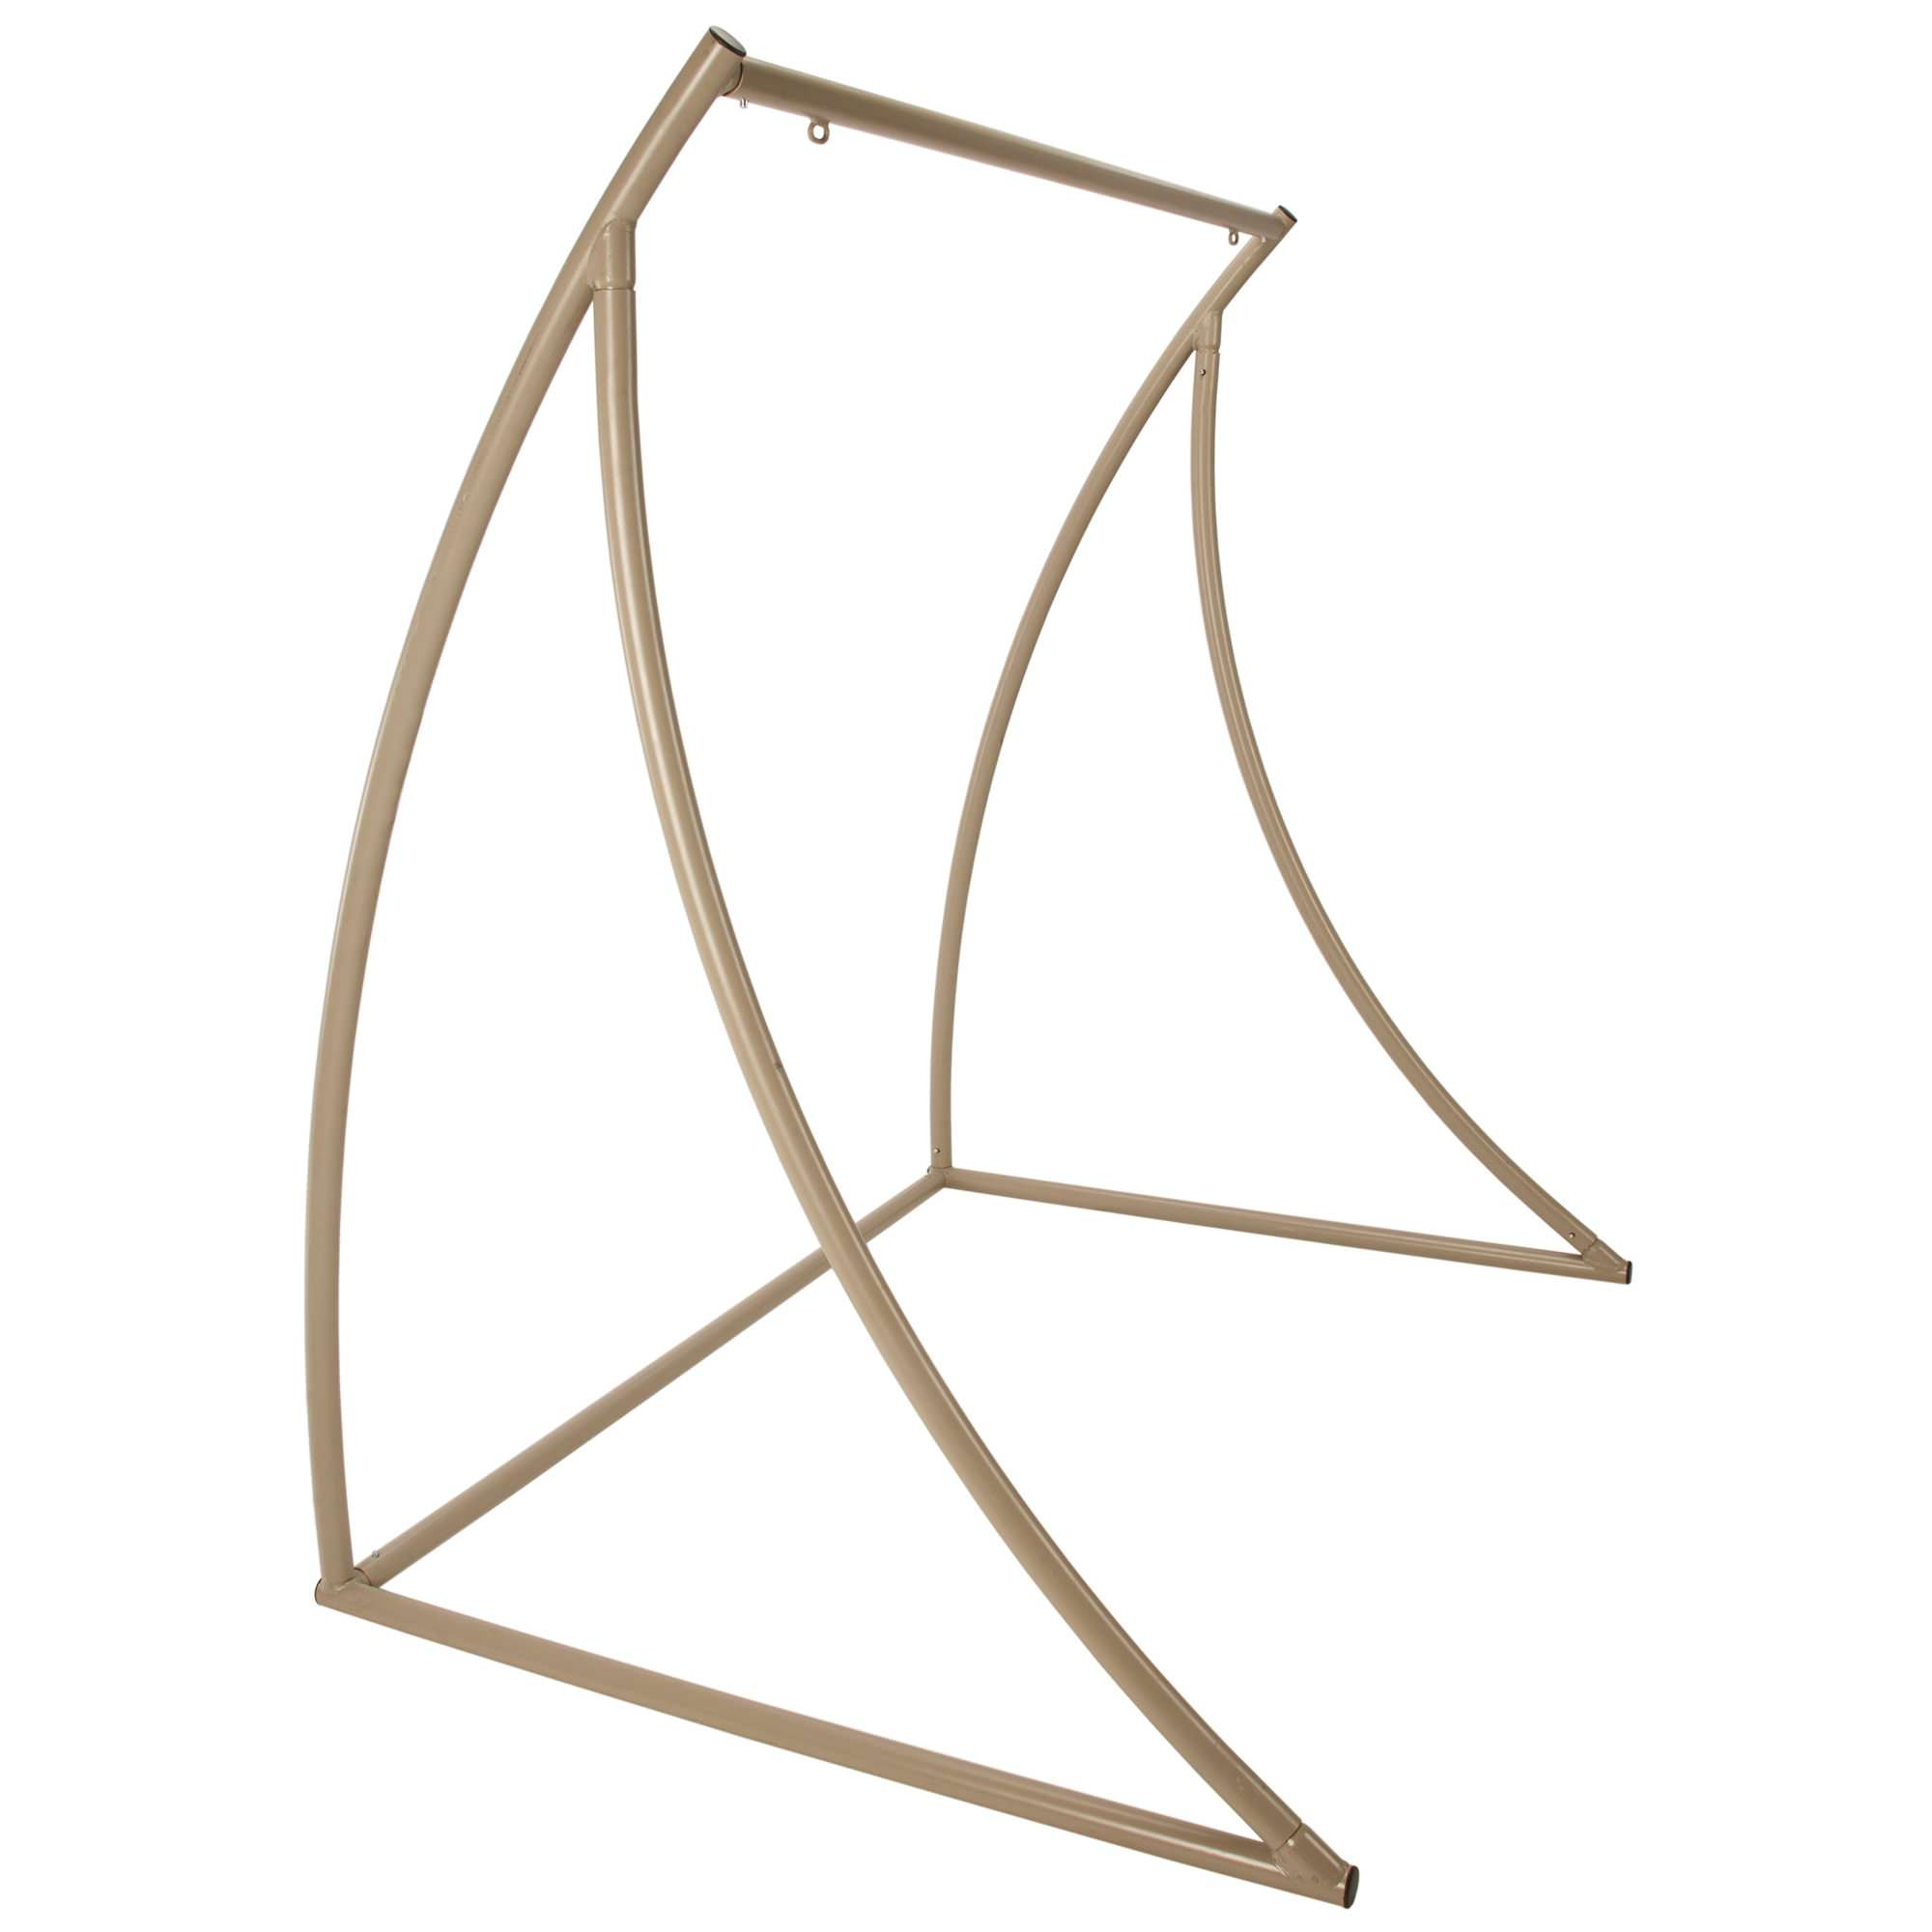 steel hammock chair stand office with adjustable arms curved taupe metal double swing on sale swsc2t